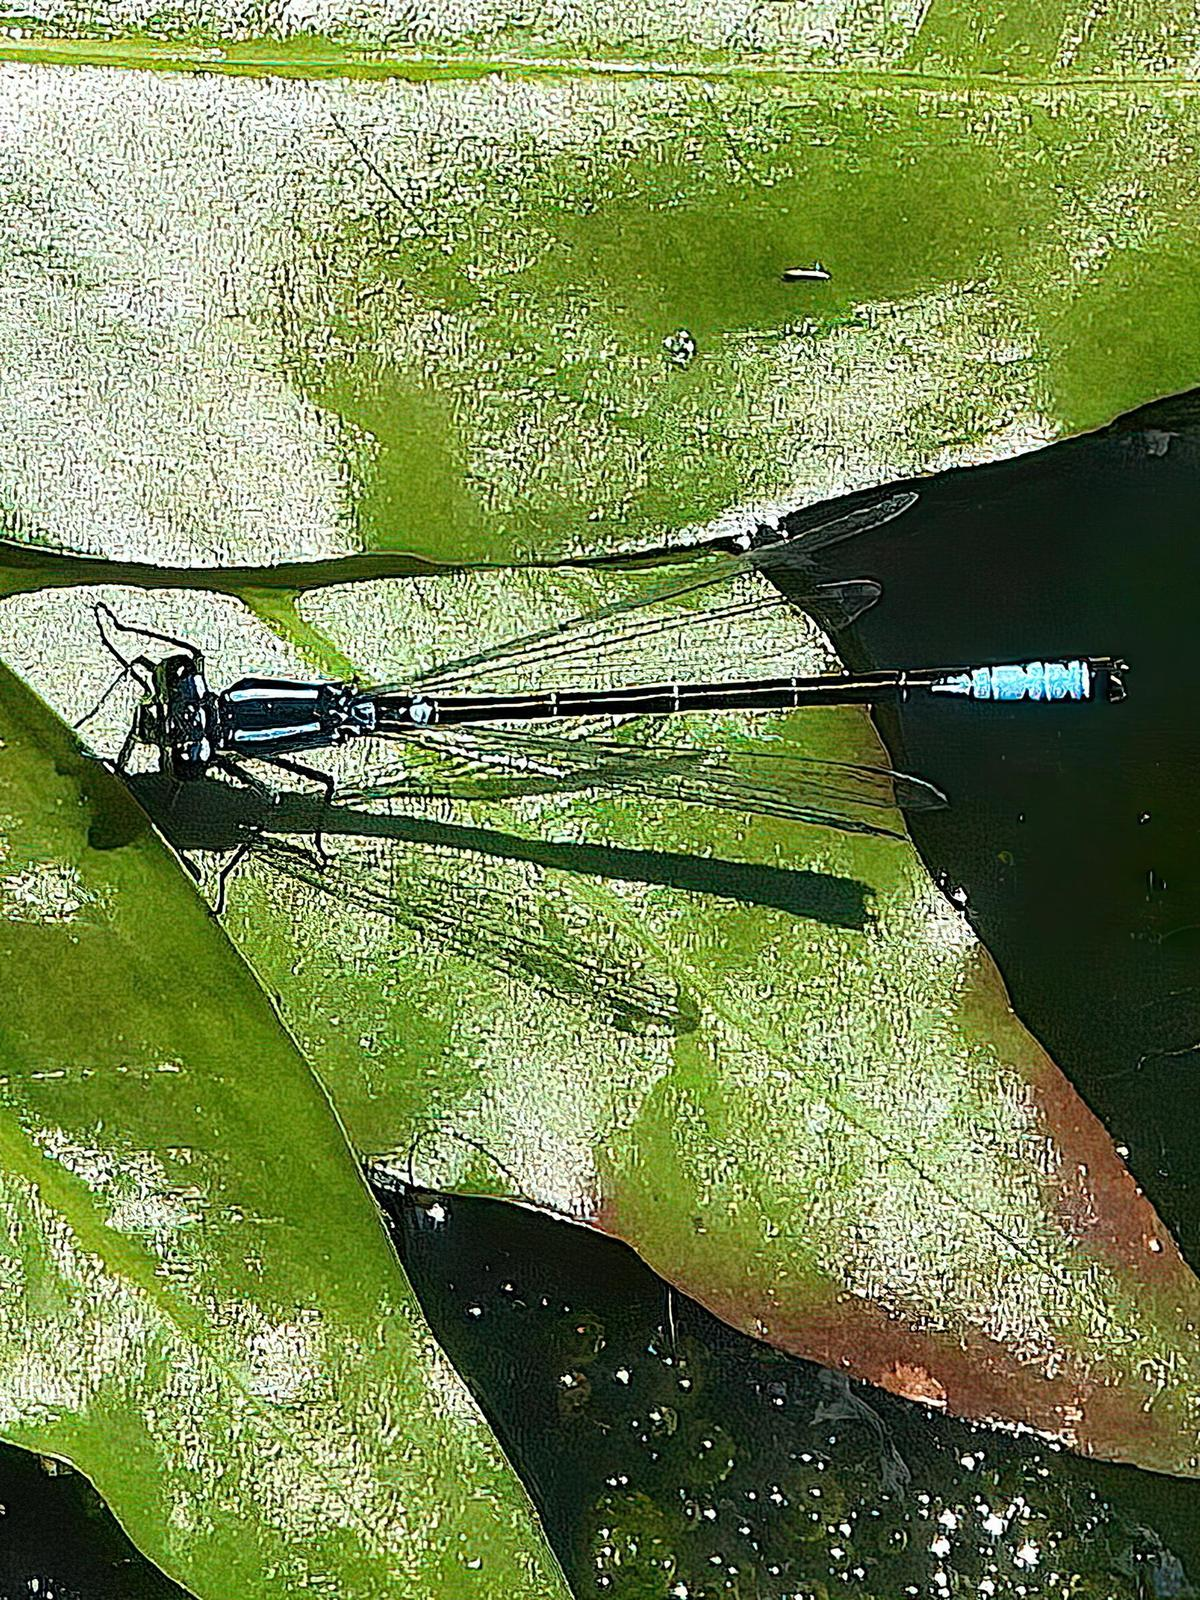 Swift Forktail Photo by Dan Tallman